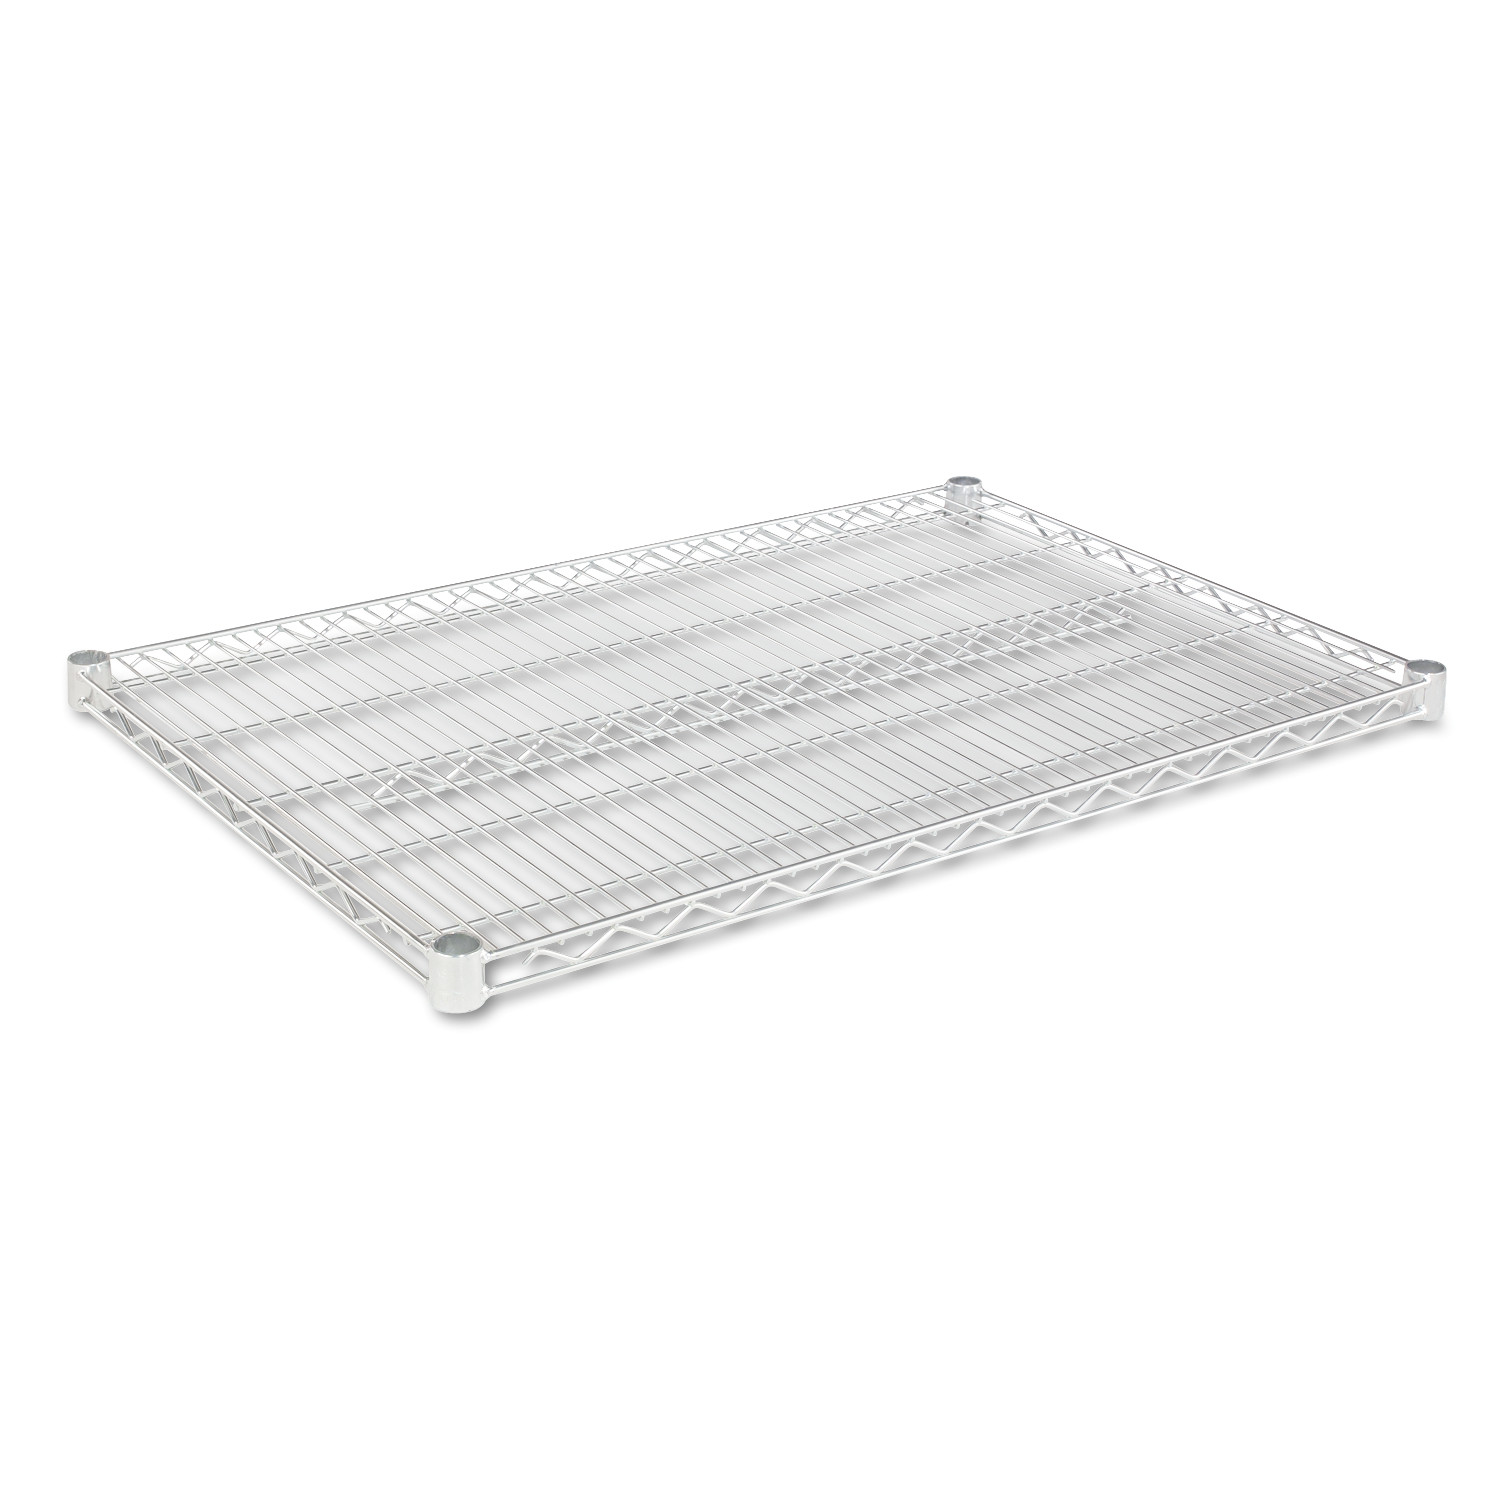 "Alera Industrial Wire Shelving Extra Wire Shelves, 36""W x 24""D, 2 Shelves Per Carton, Available in Silver or Black"